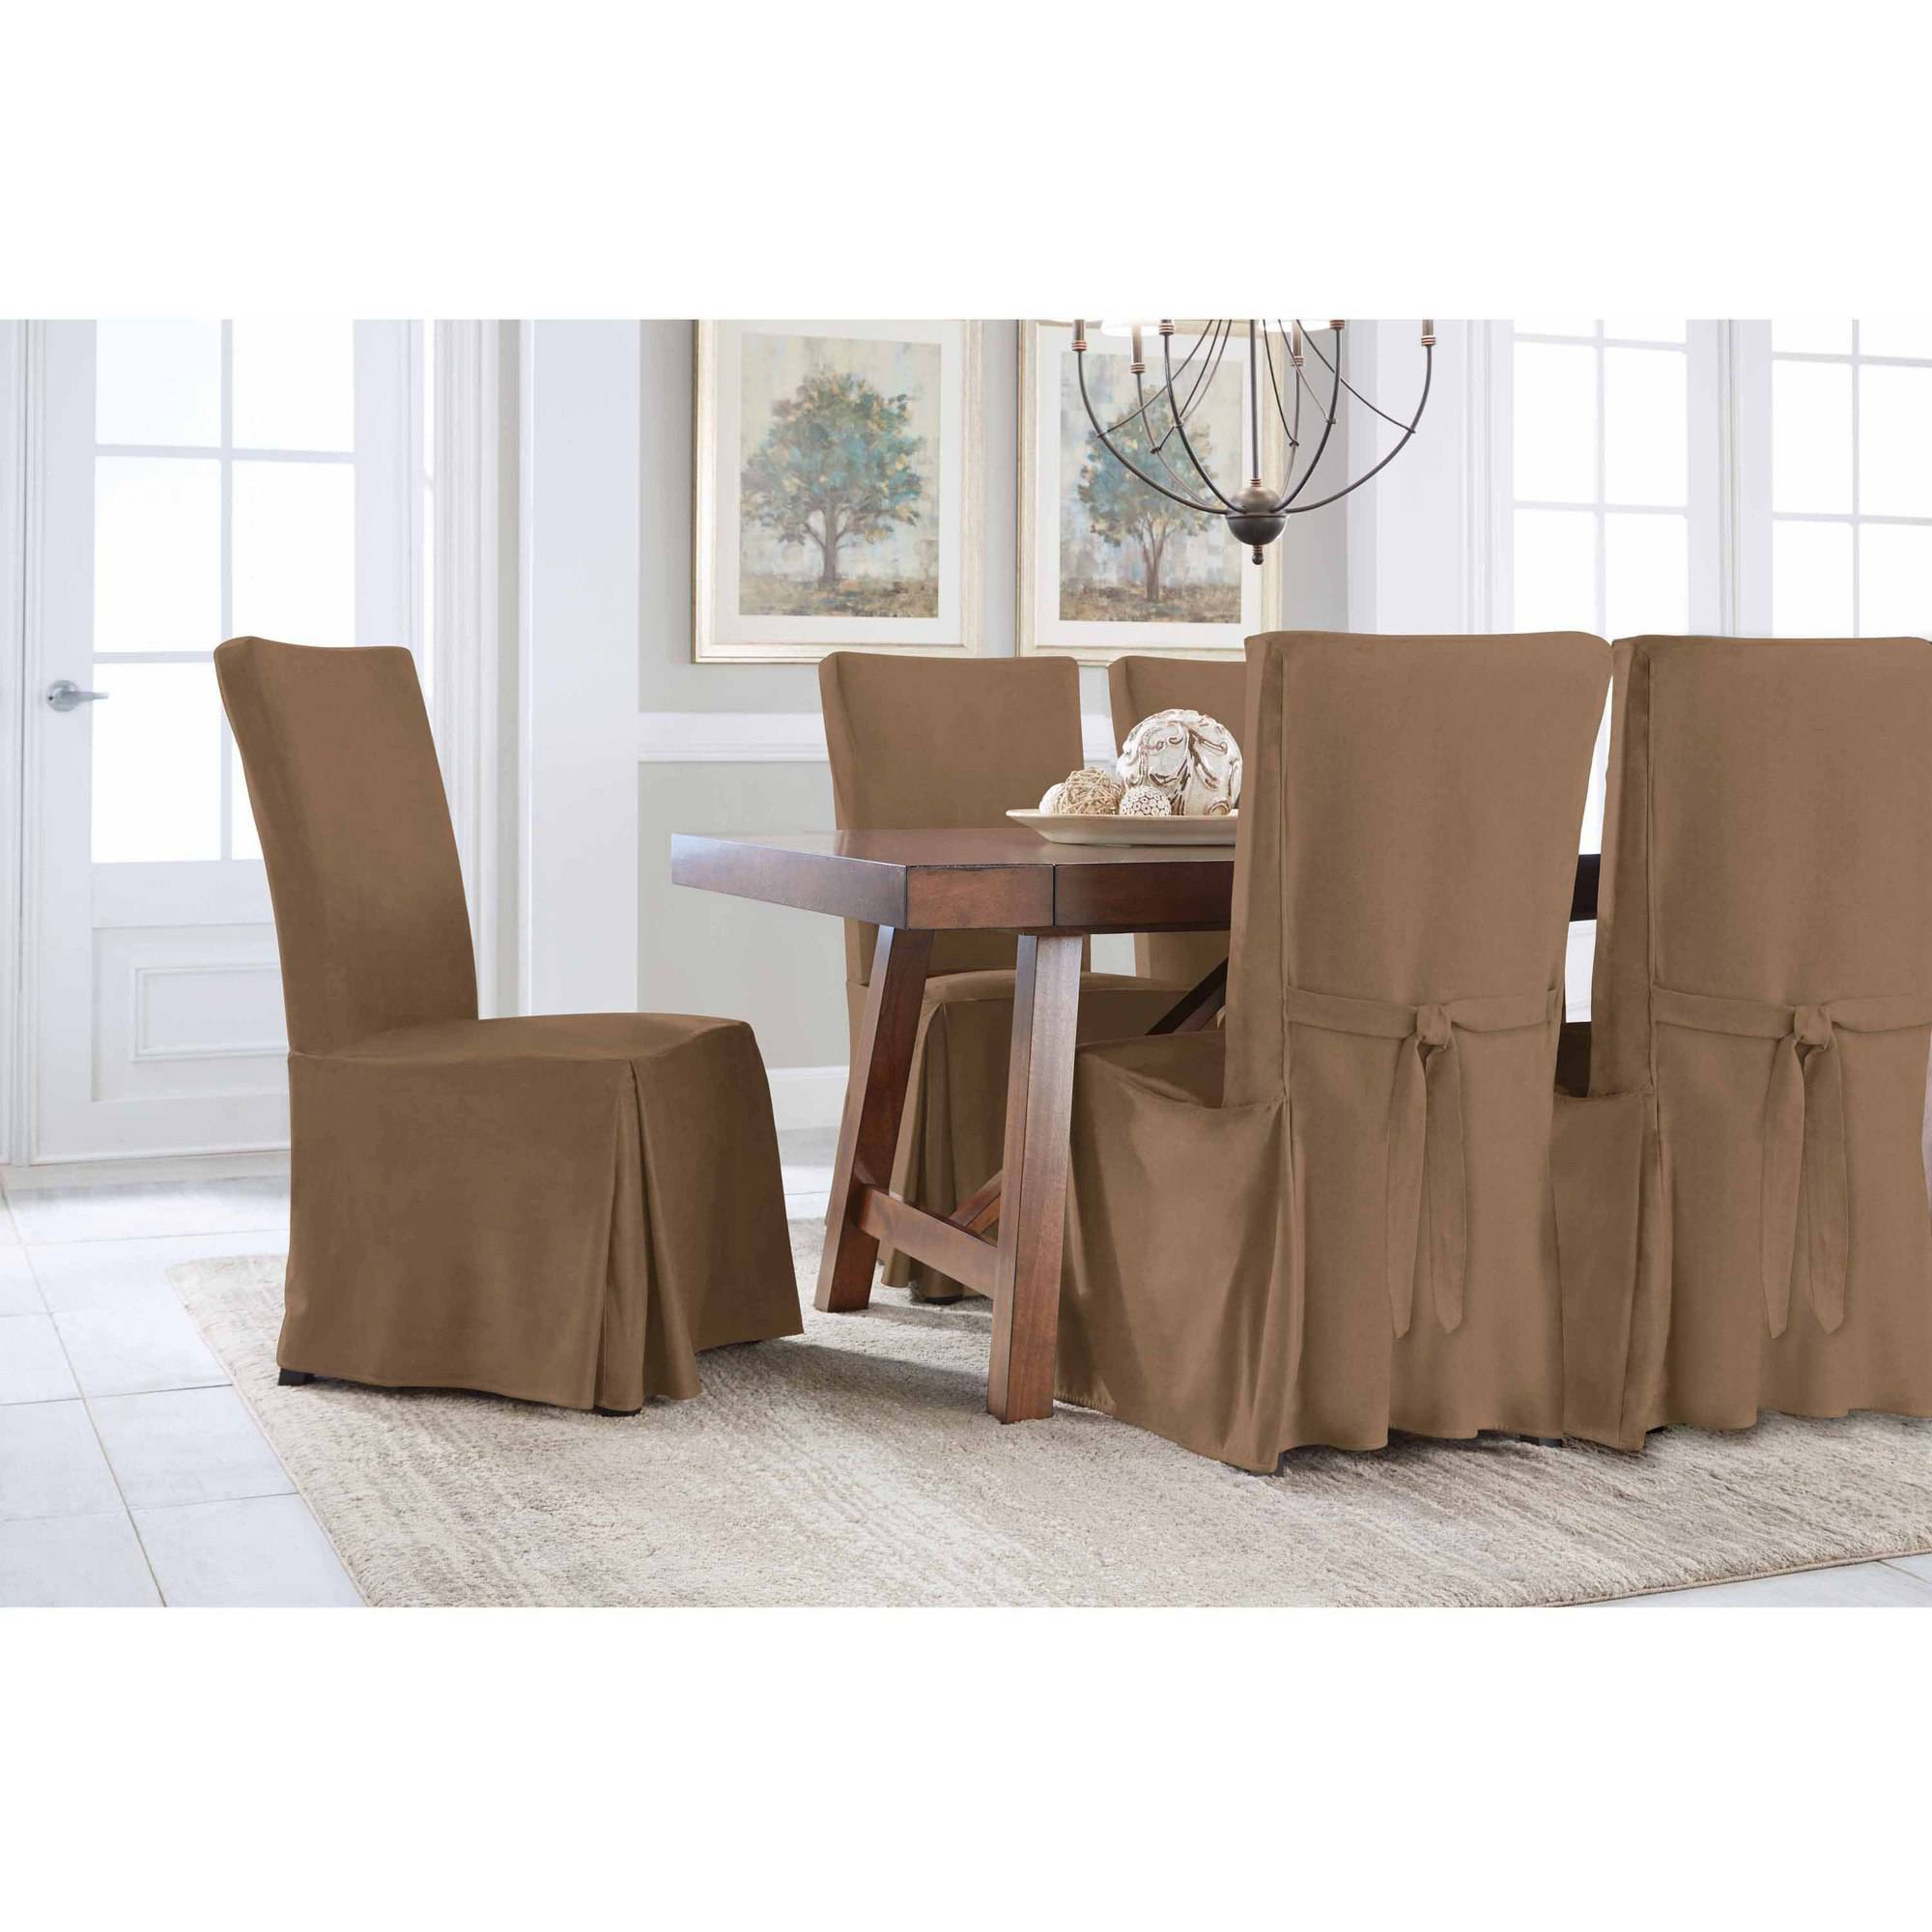 Serta Relaxed Fit Smooth Suede Furniture Slipcover 2 Pack